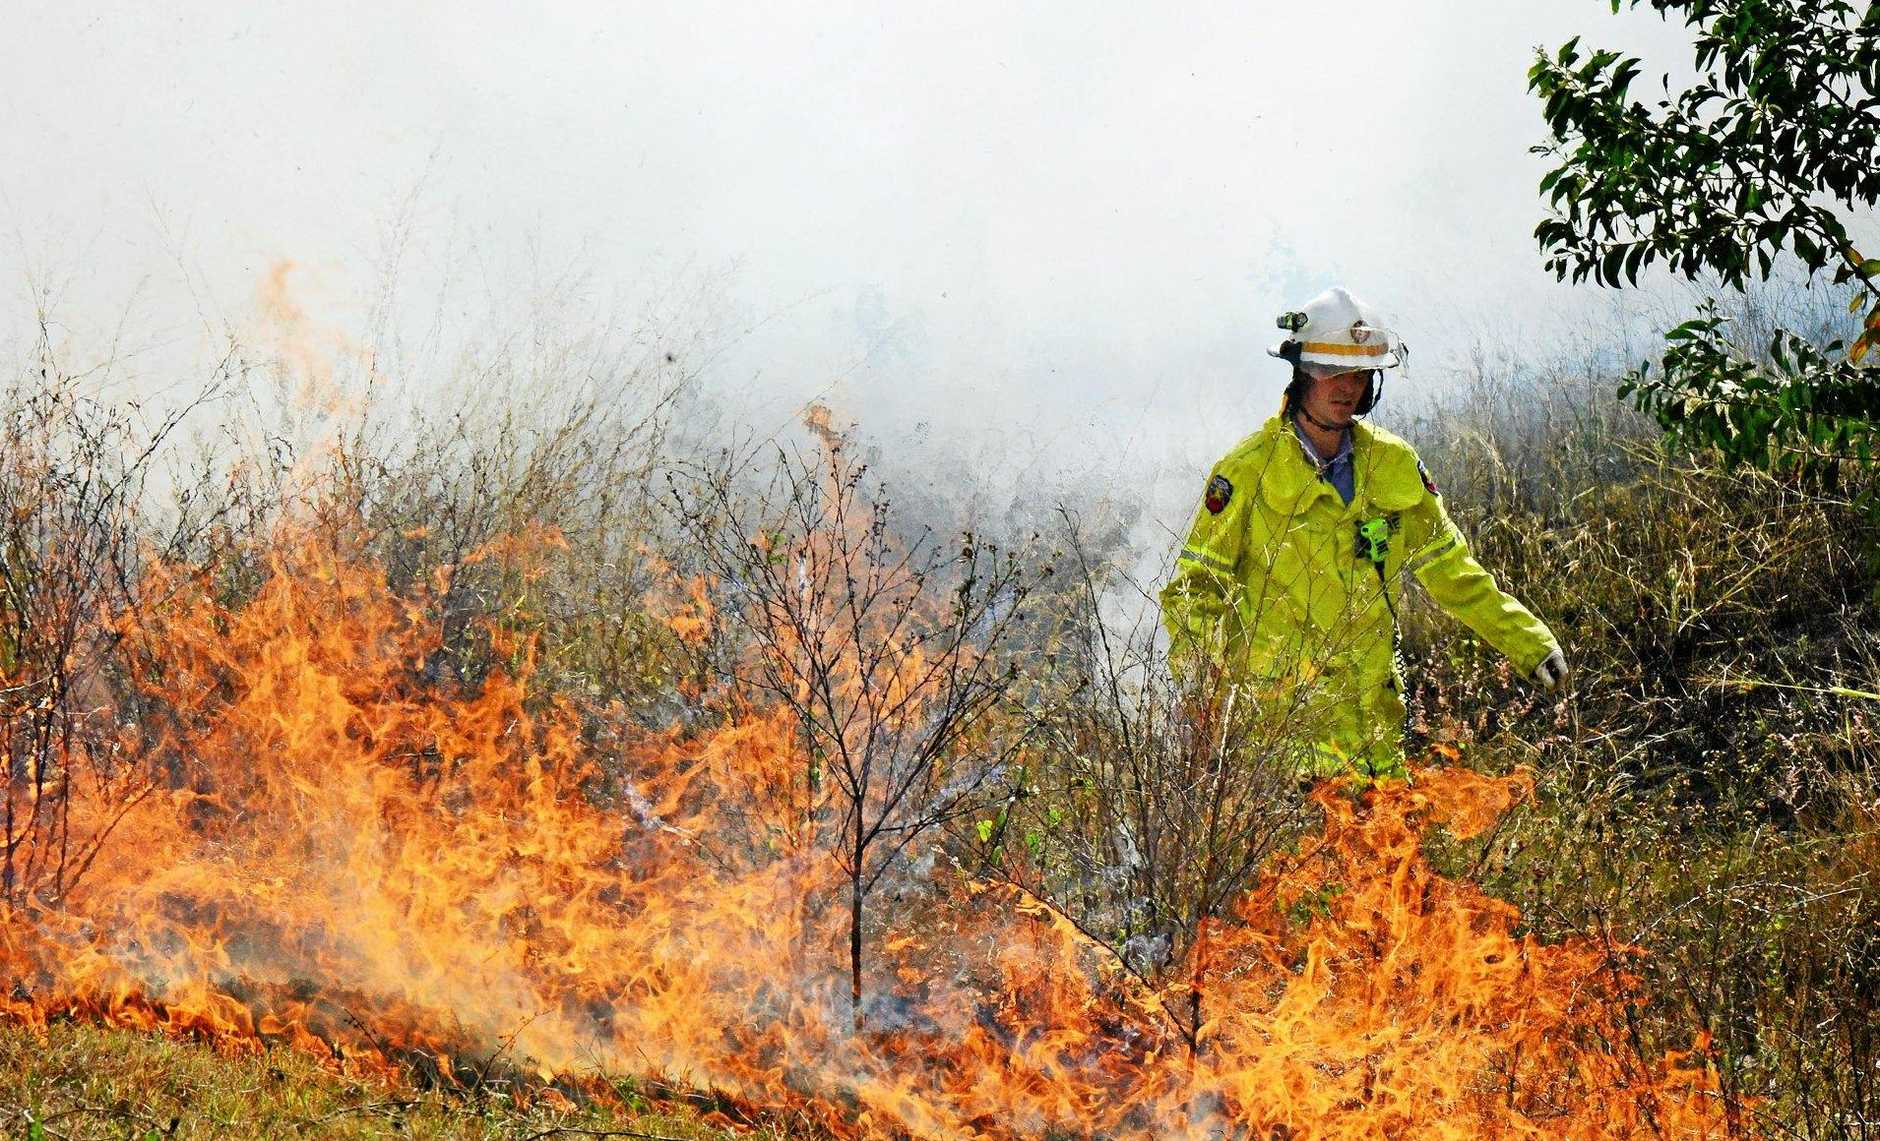 Queensland Fire and Rescue Services fire fighters from the Ripley Station were on hand to control a small grass fire at Yamanto. Photo: David Nielsen / The Queensland Times